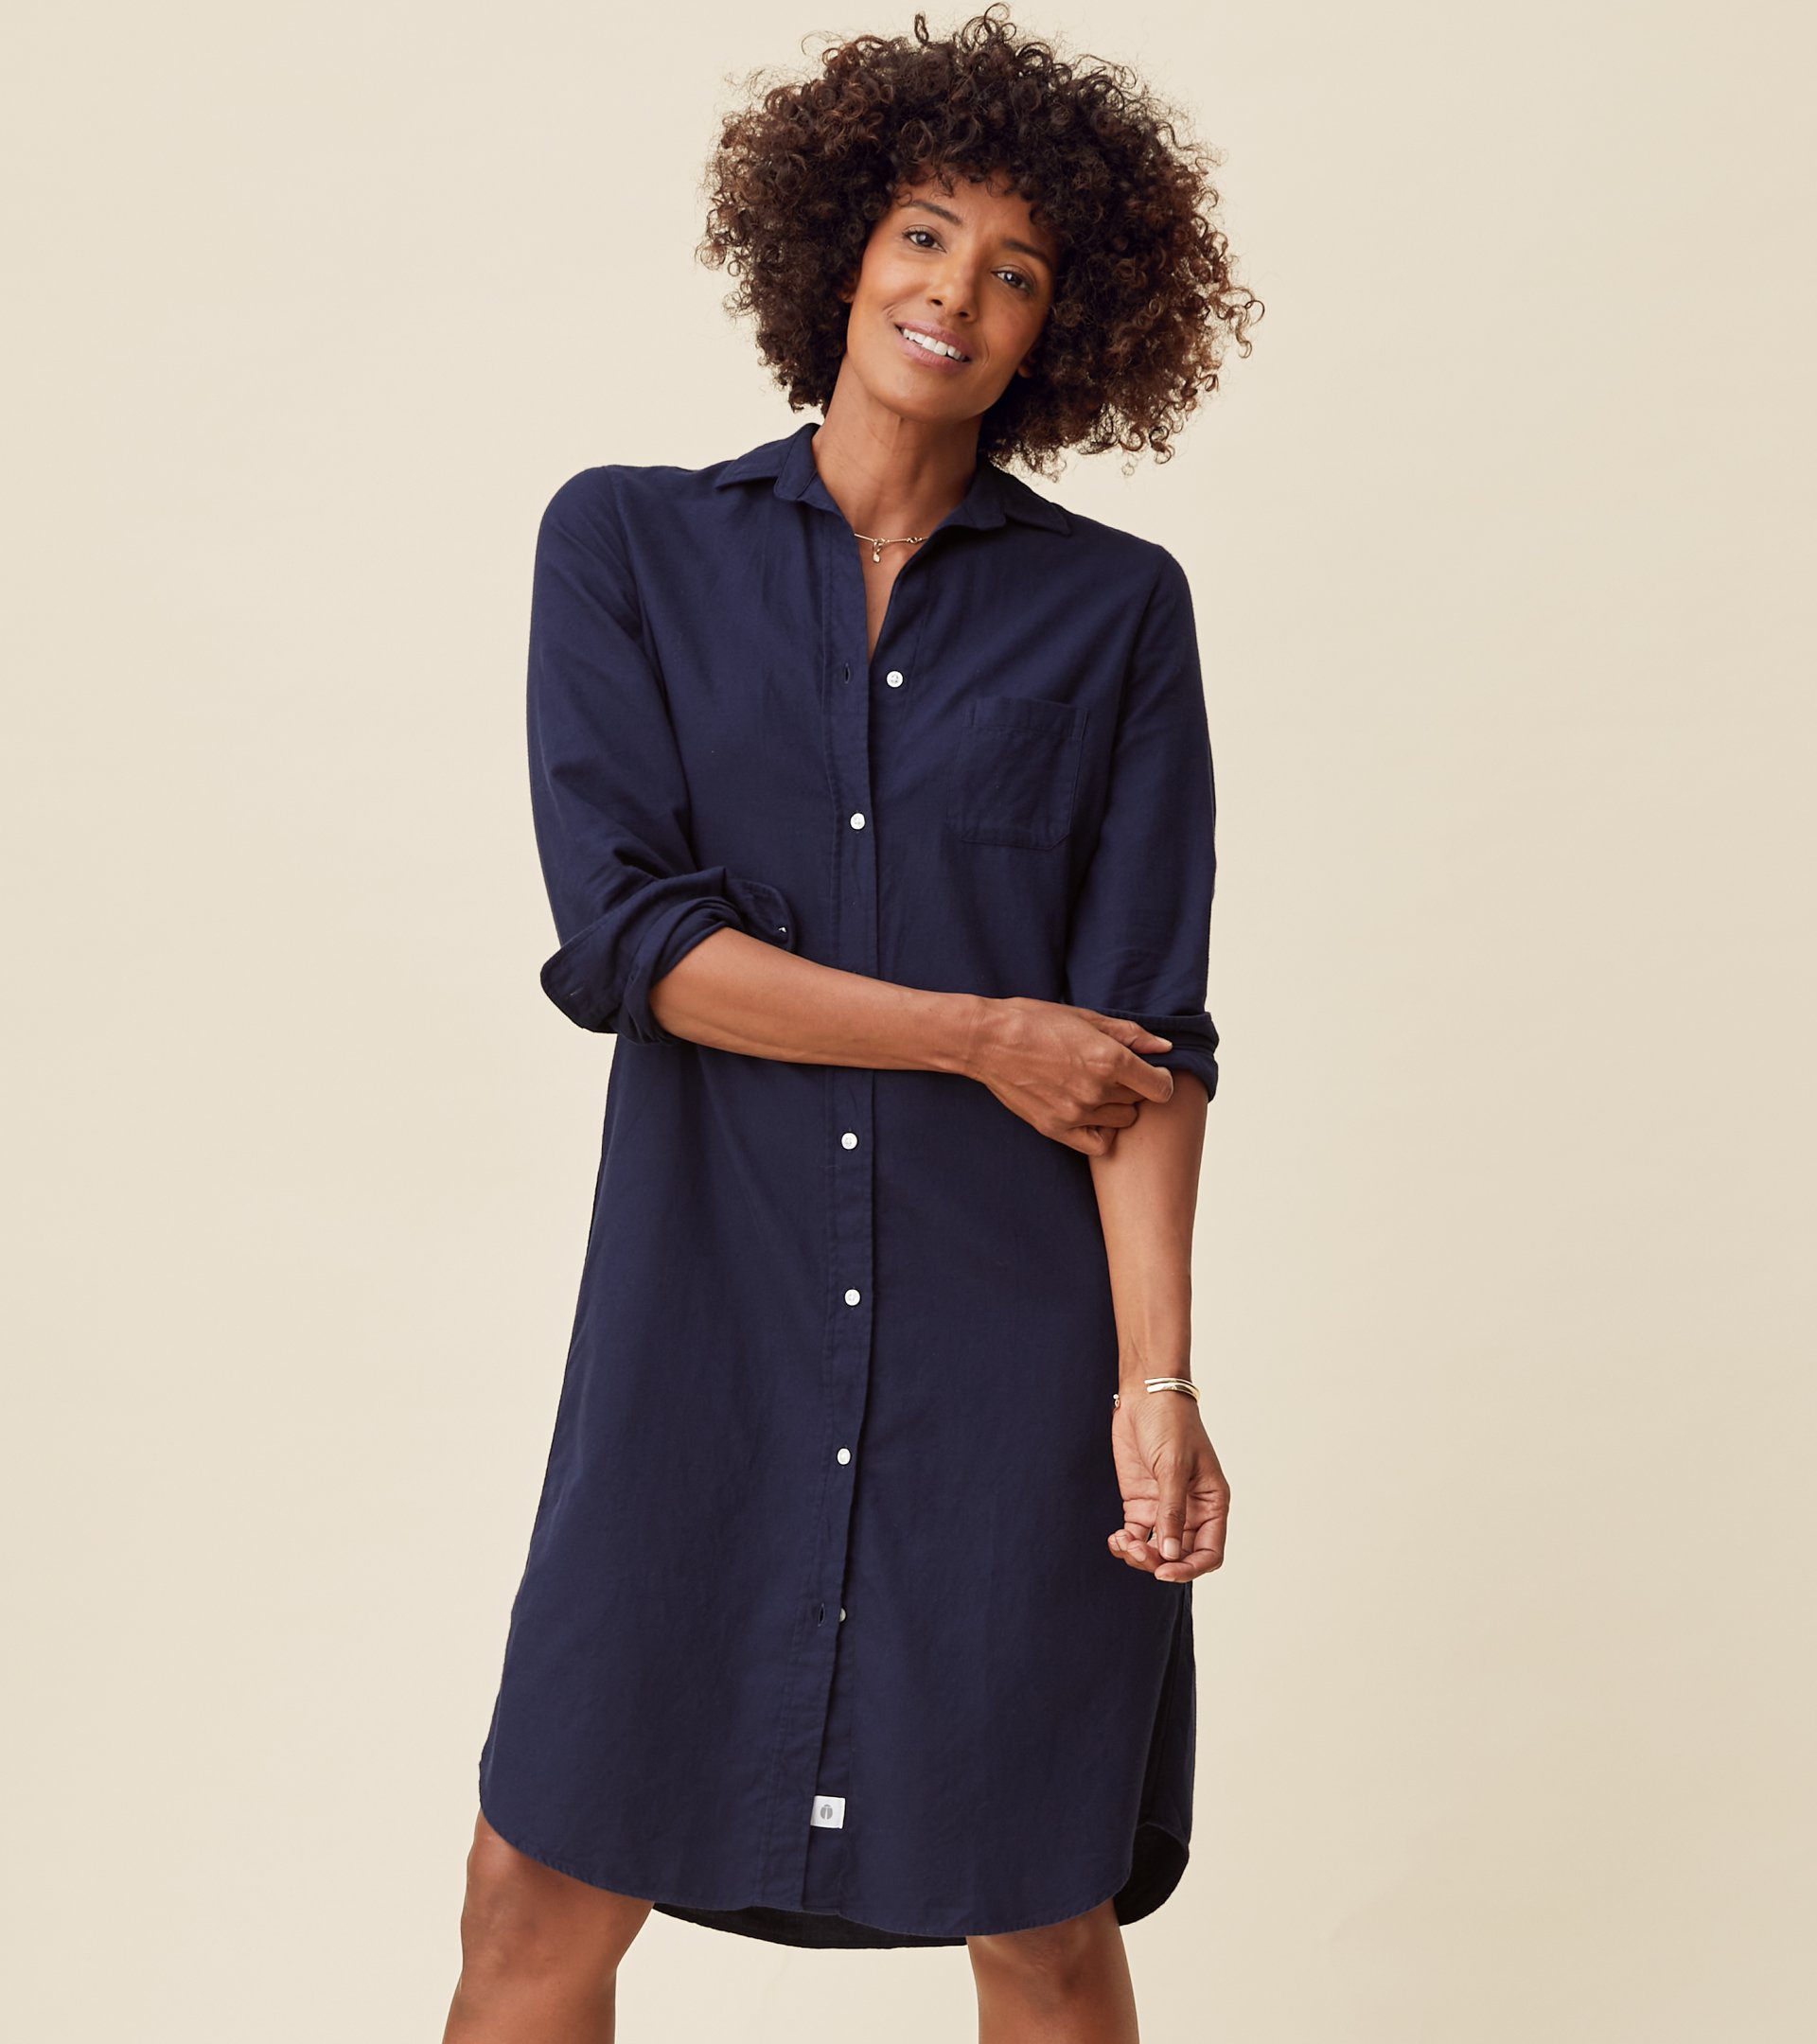 Image of The Hero Midi Dress Navy, Feathered Flannel